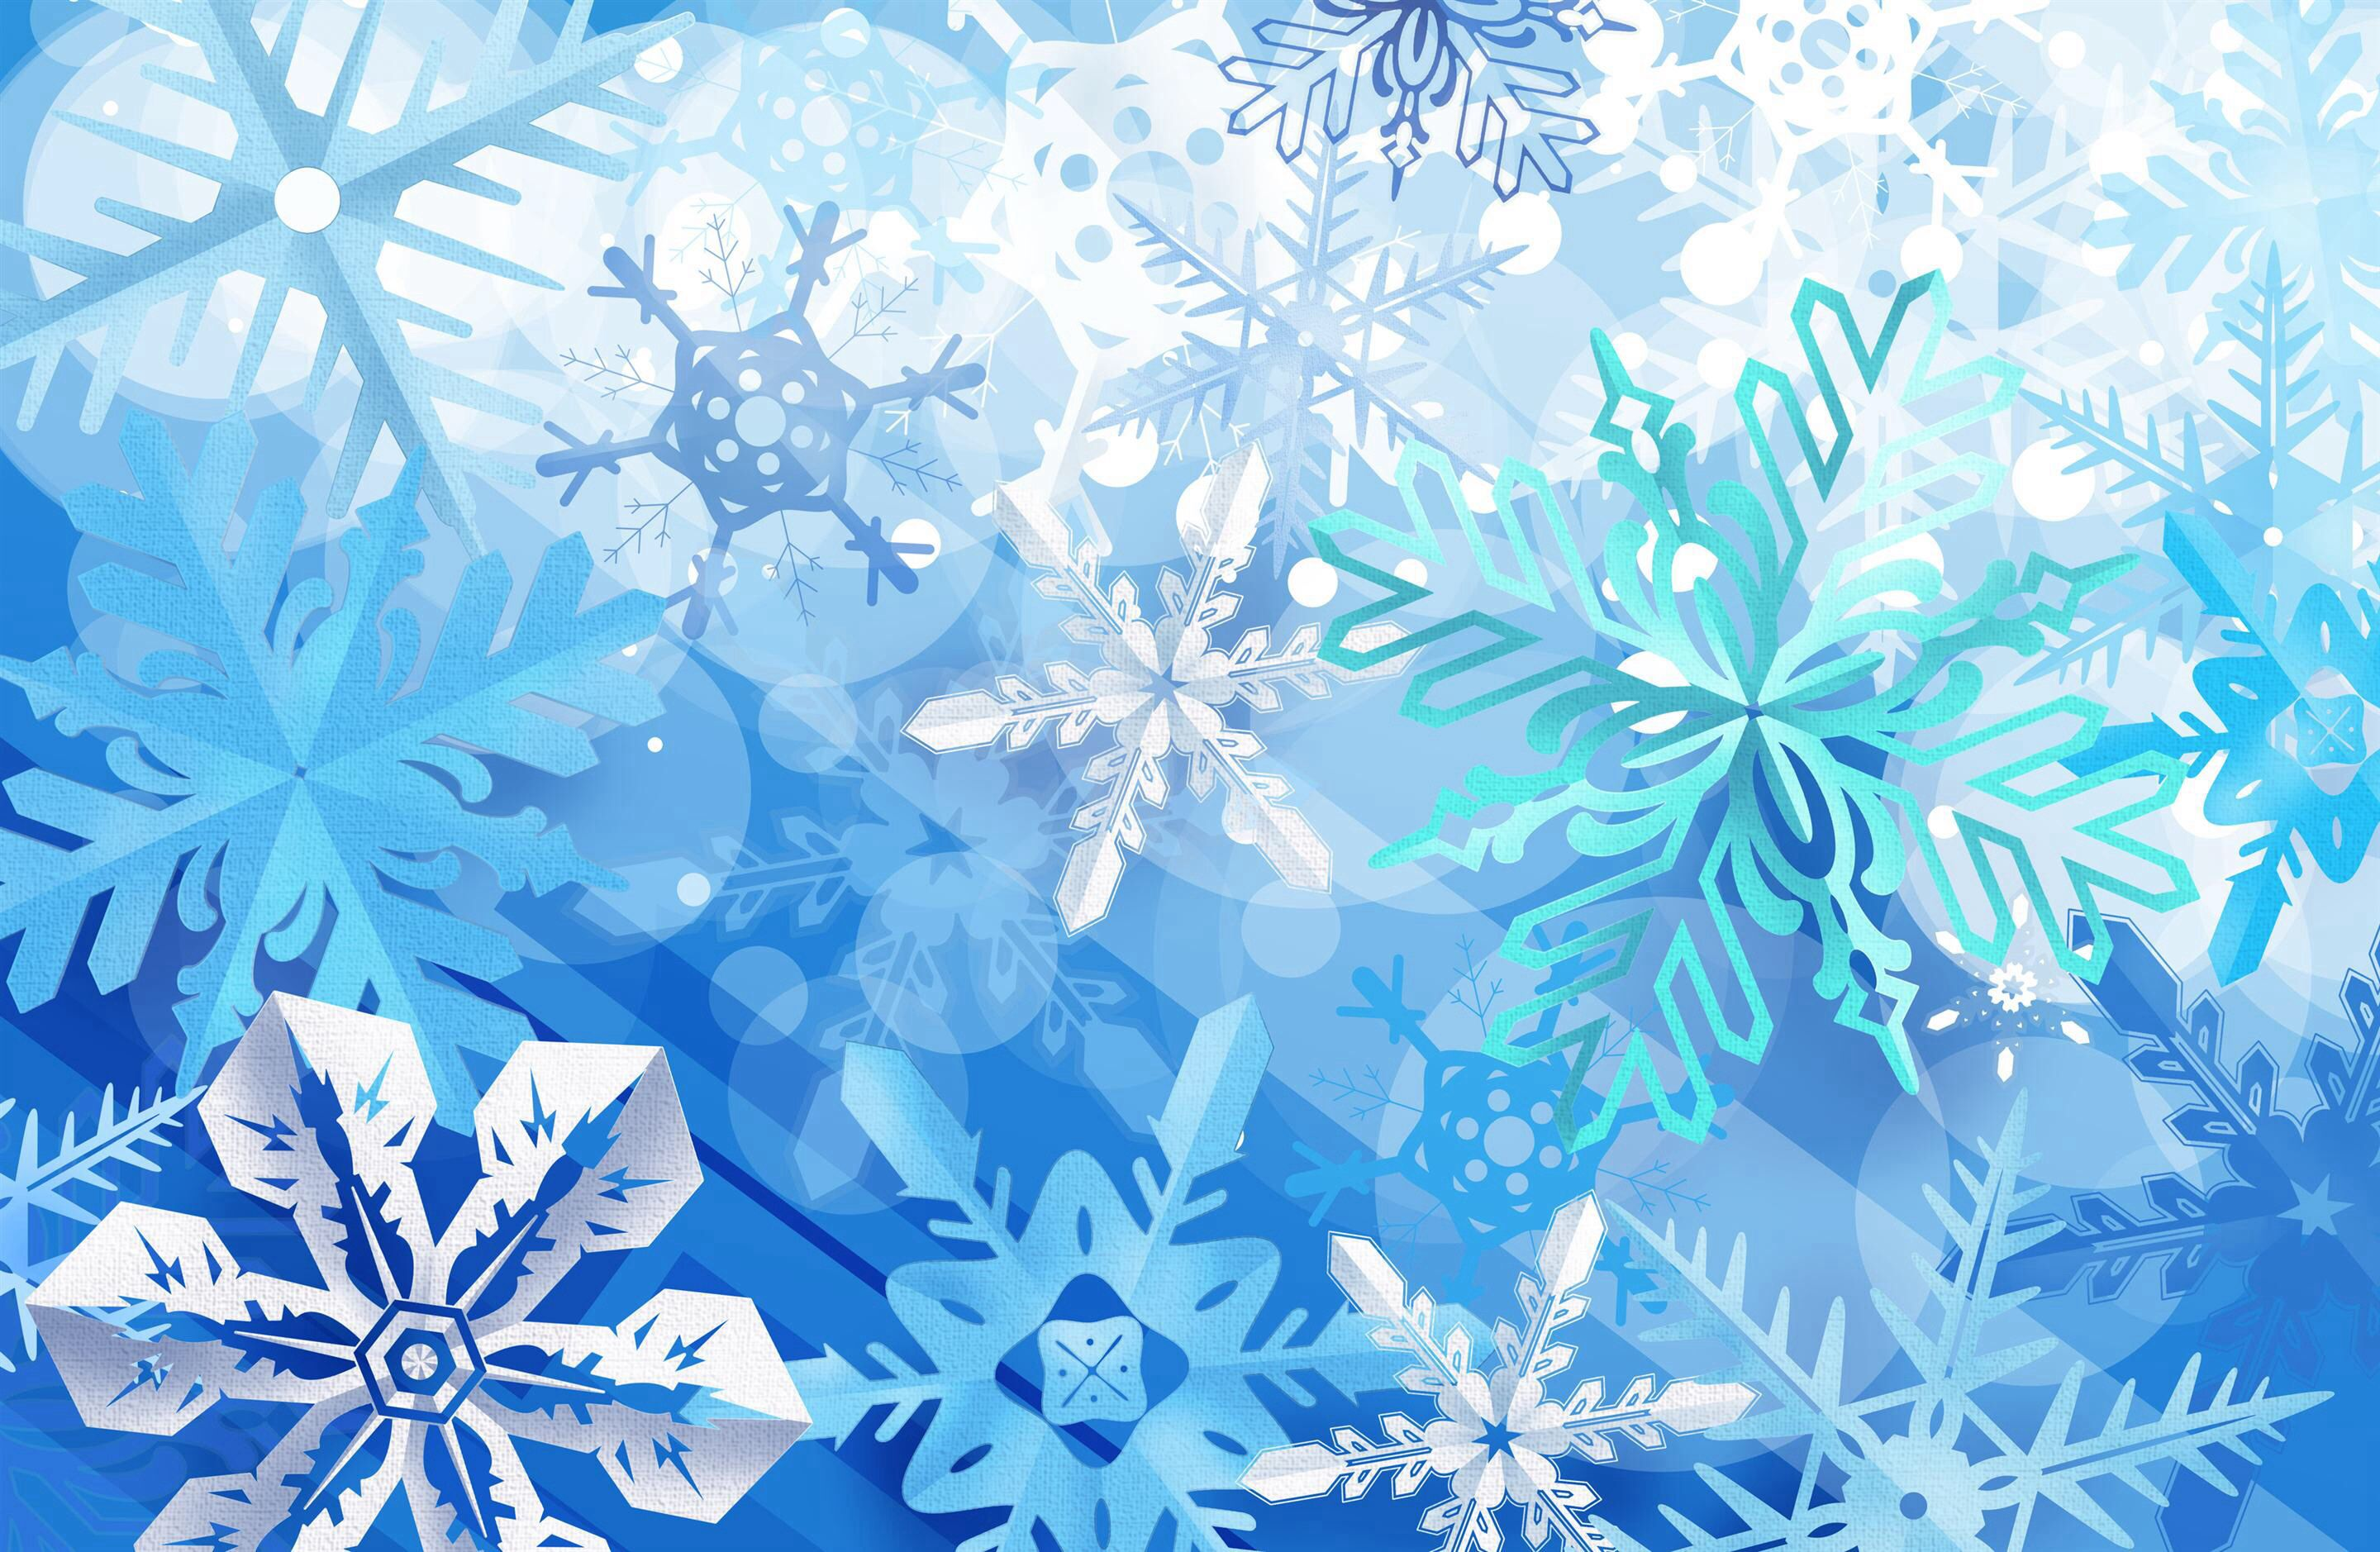 Christmas wallpaper perfect to phone or tablet screensavers wallpapers snowflake new year snowflakes voltagebd Gallery